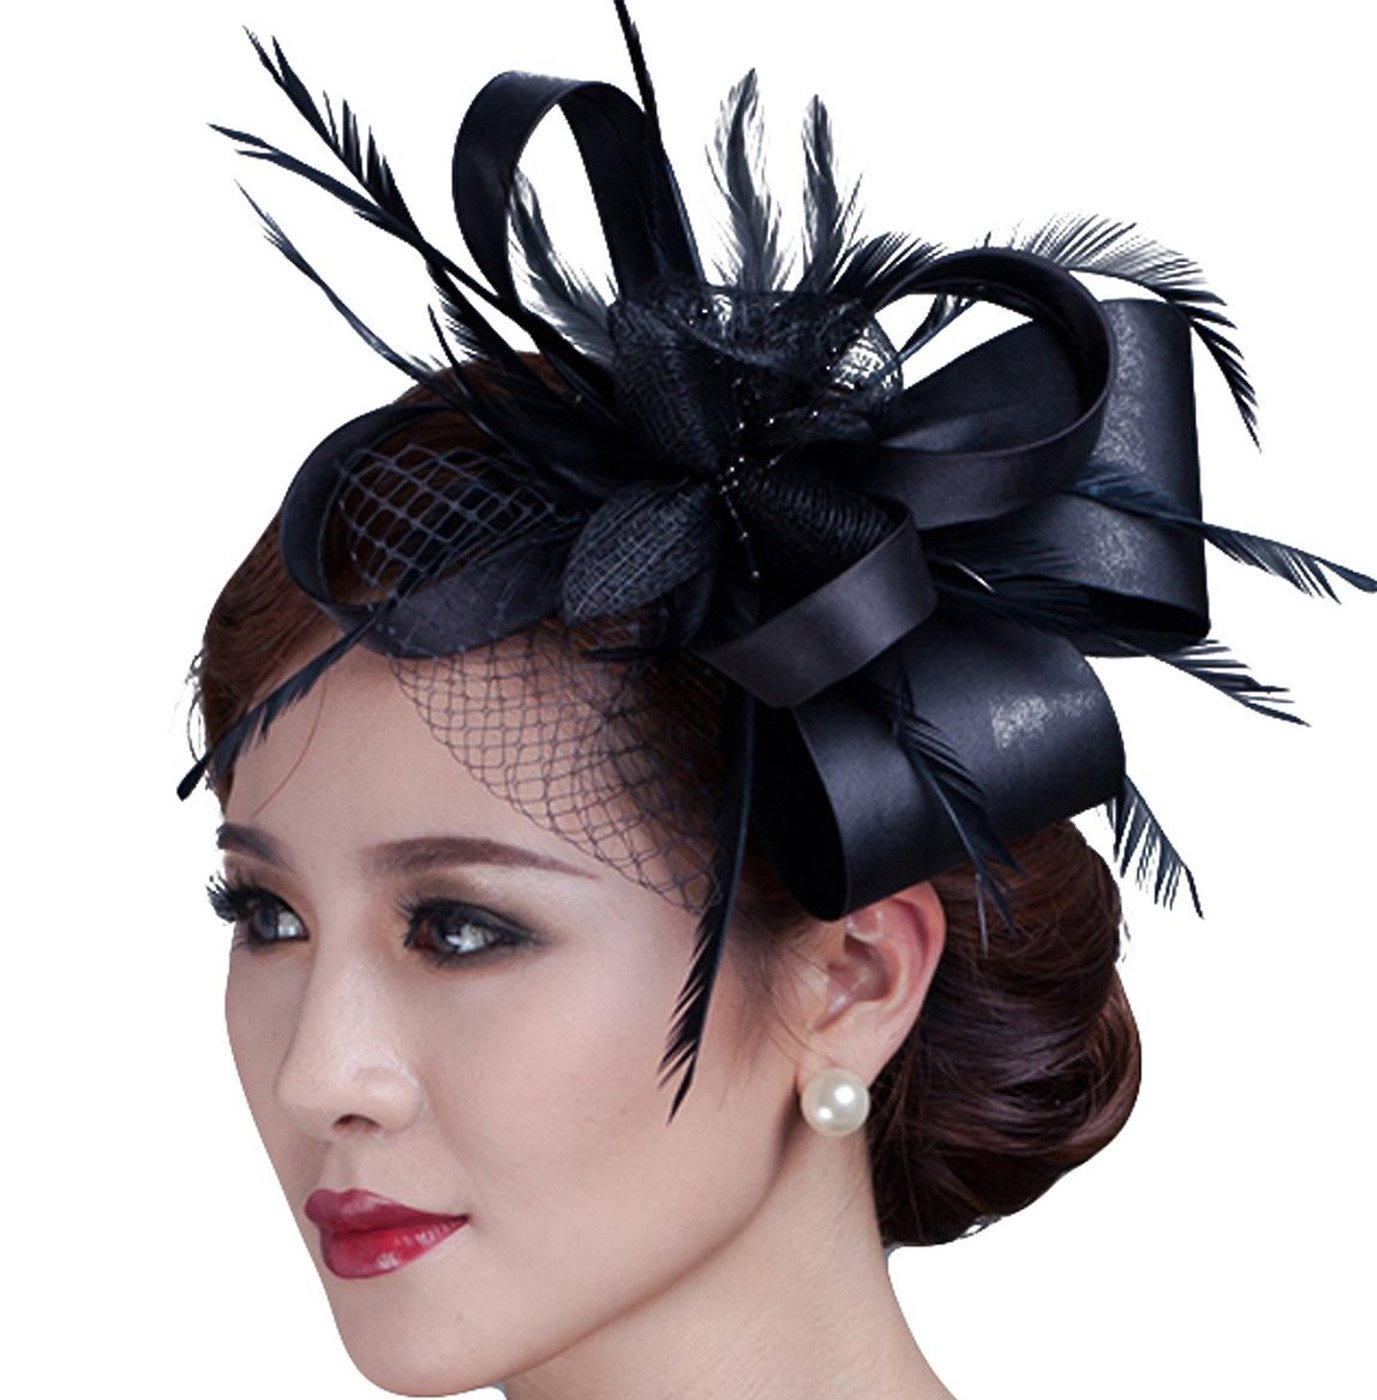 Fascinator Flower Cocktail Party Headdress Wedding Bridal Headpiece for Women (Black)